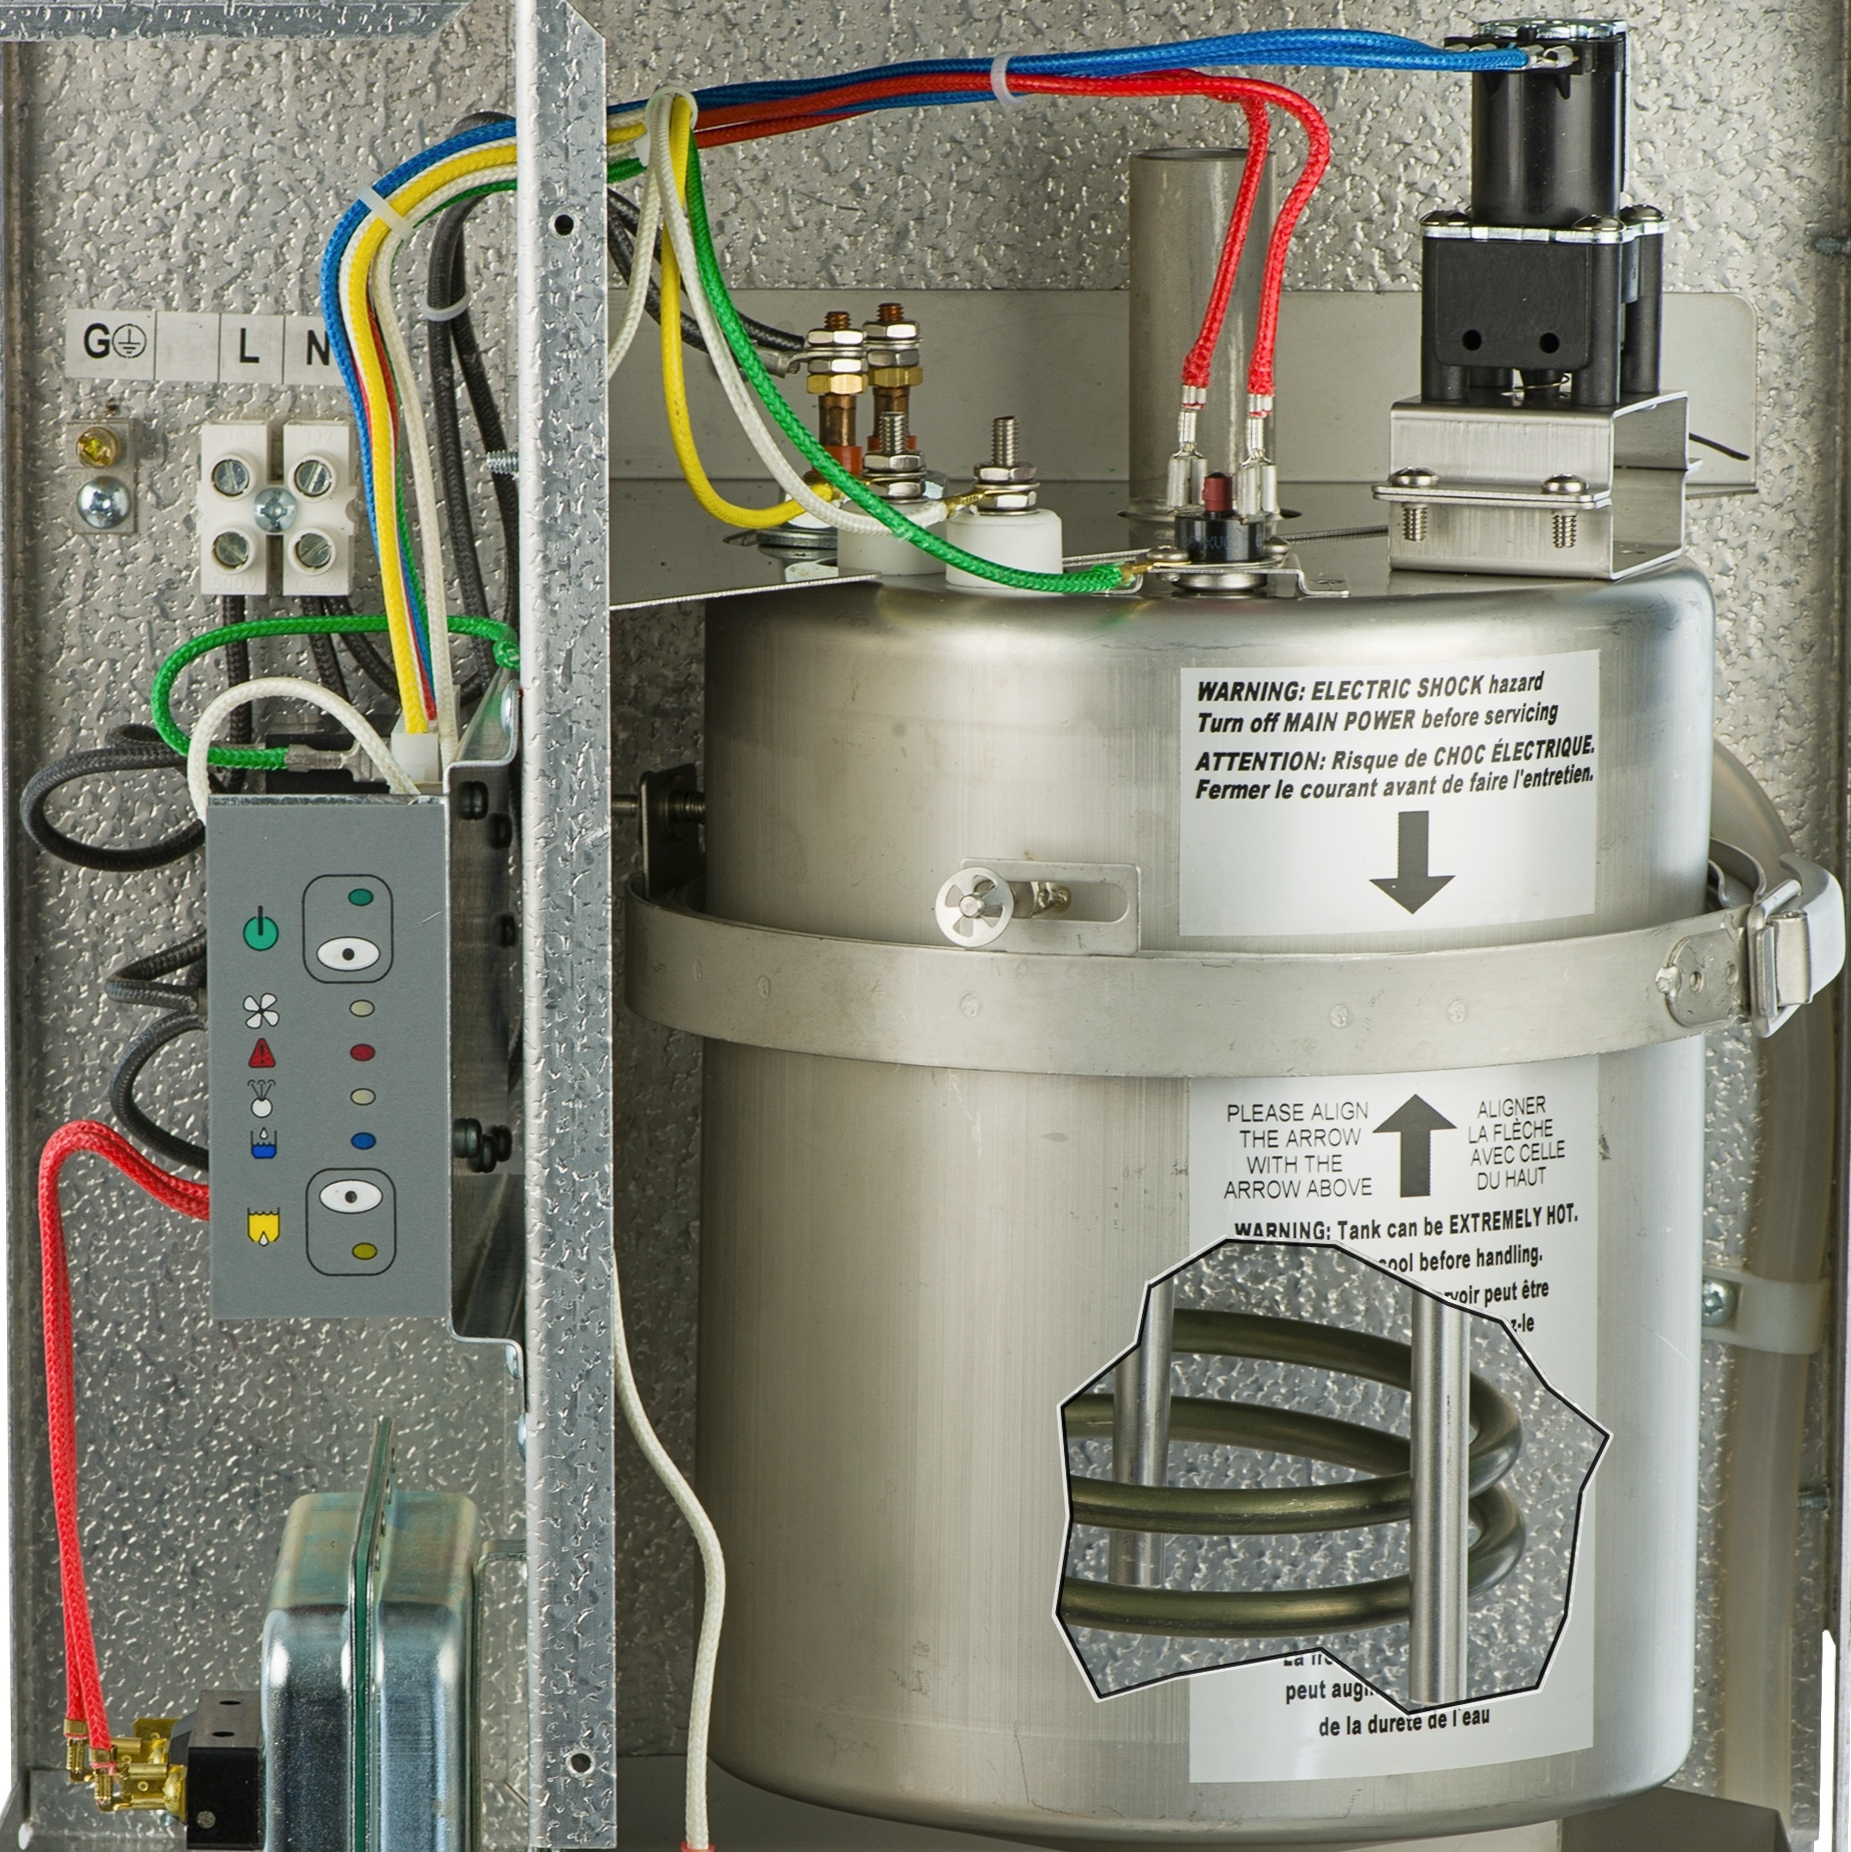 thermolec electric boiler wiring diagram car air conditioning parts heating elements ep sales inc